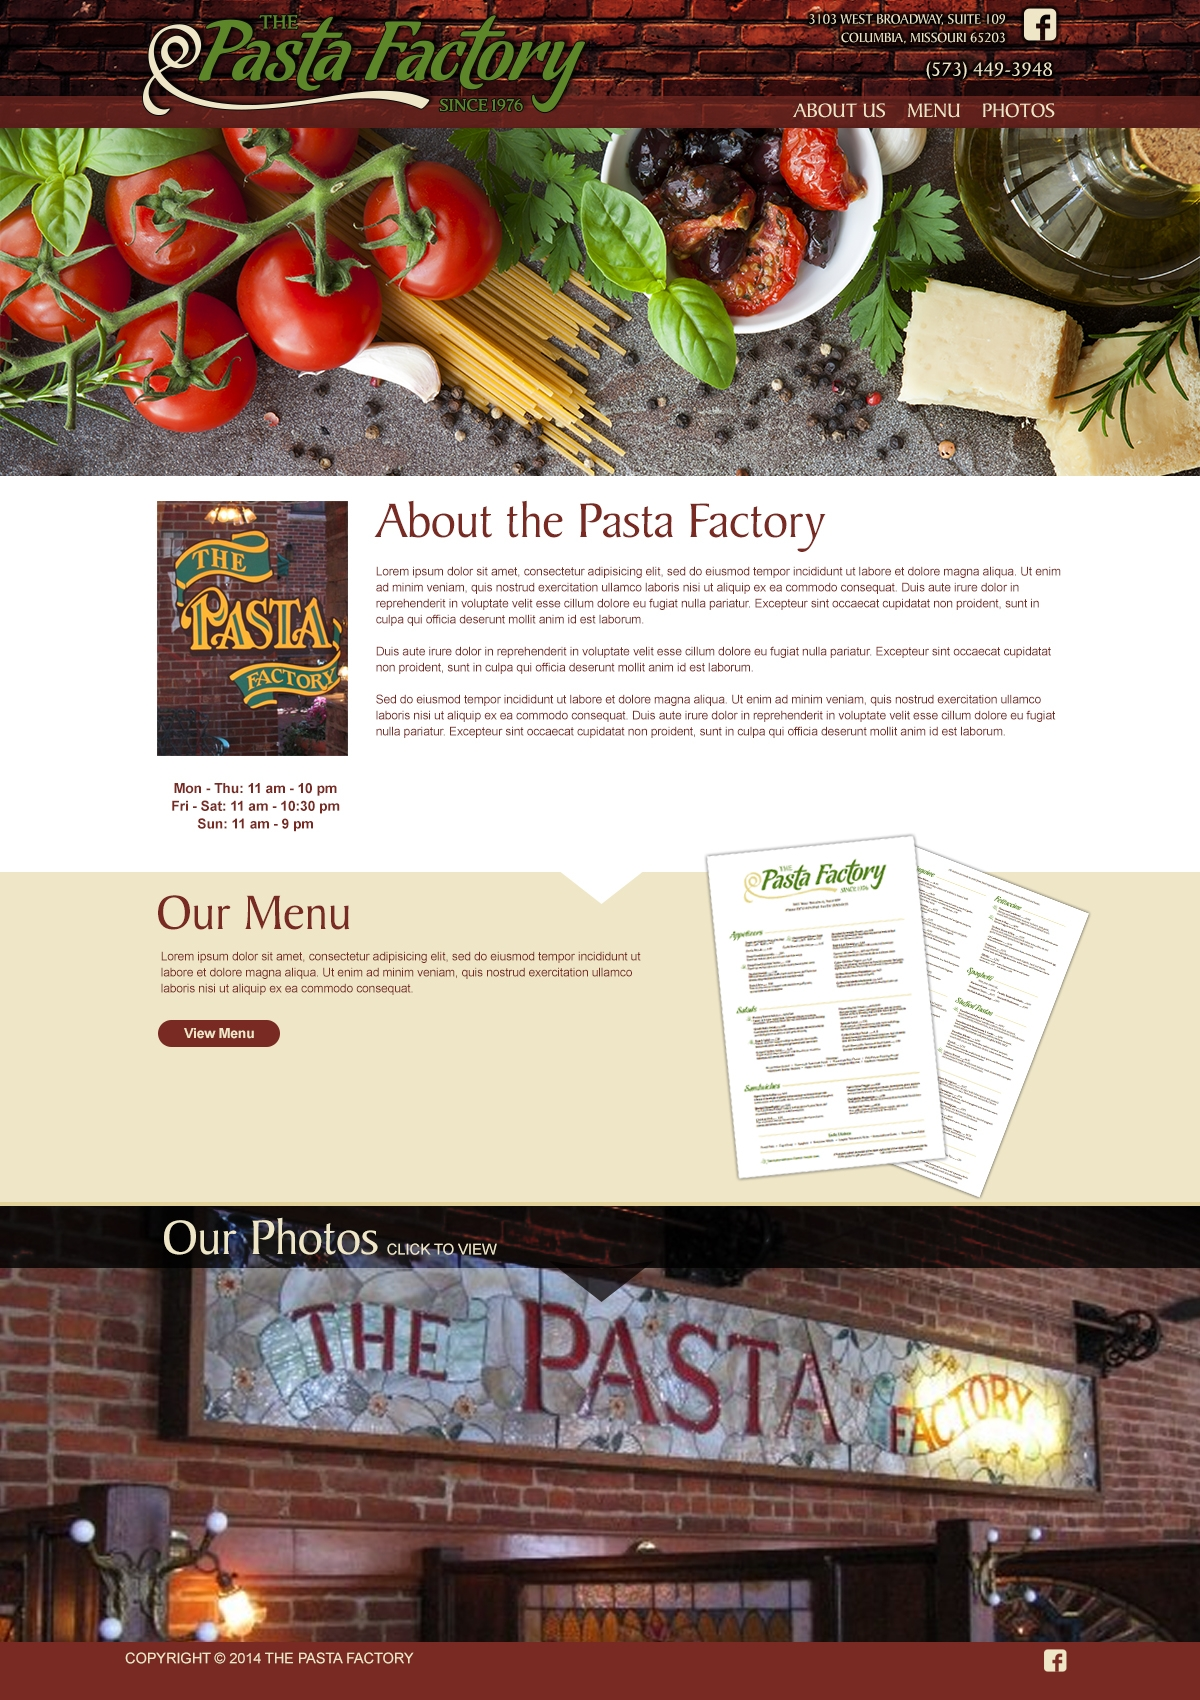 The Pasta Factory in Columbia Missouri.